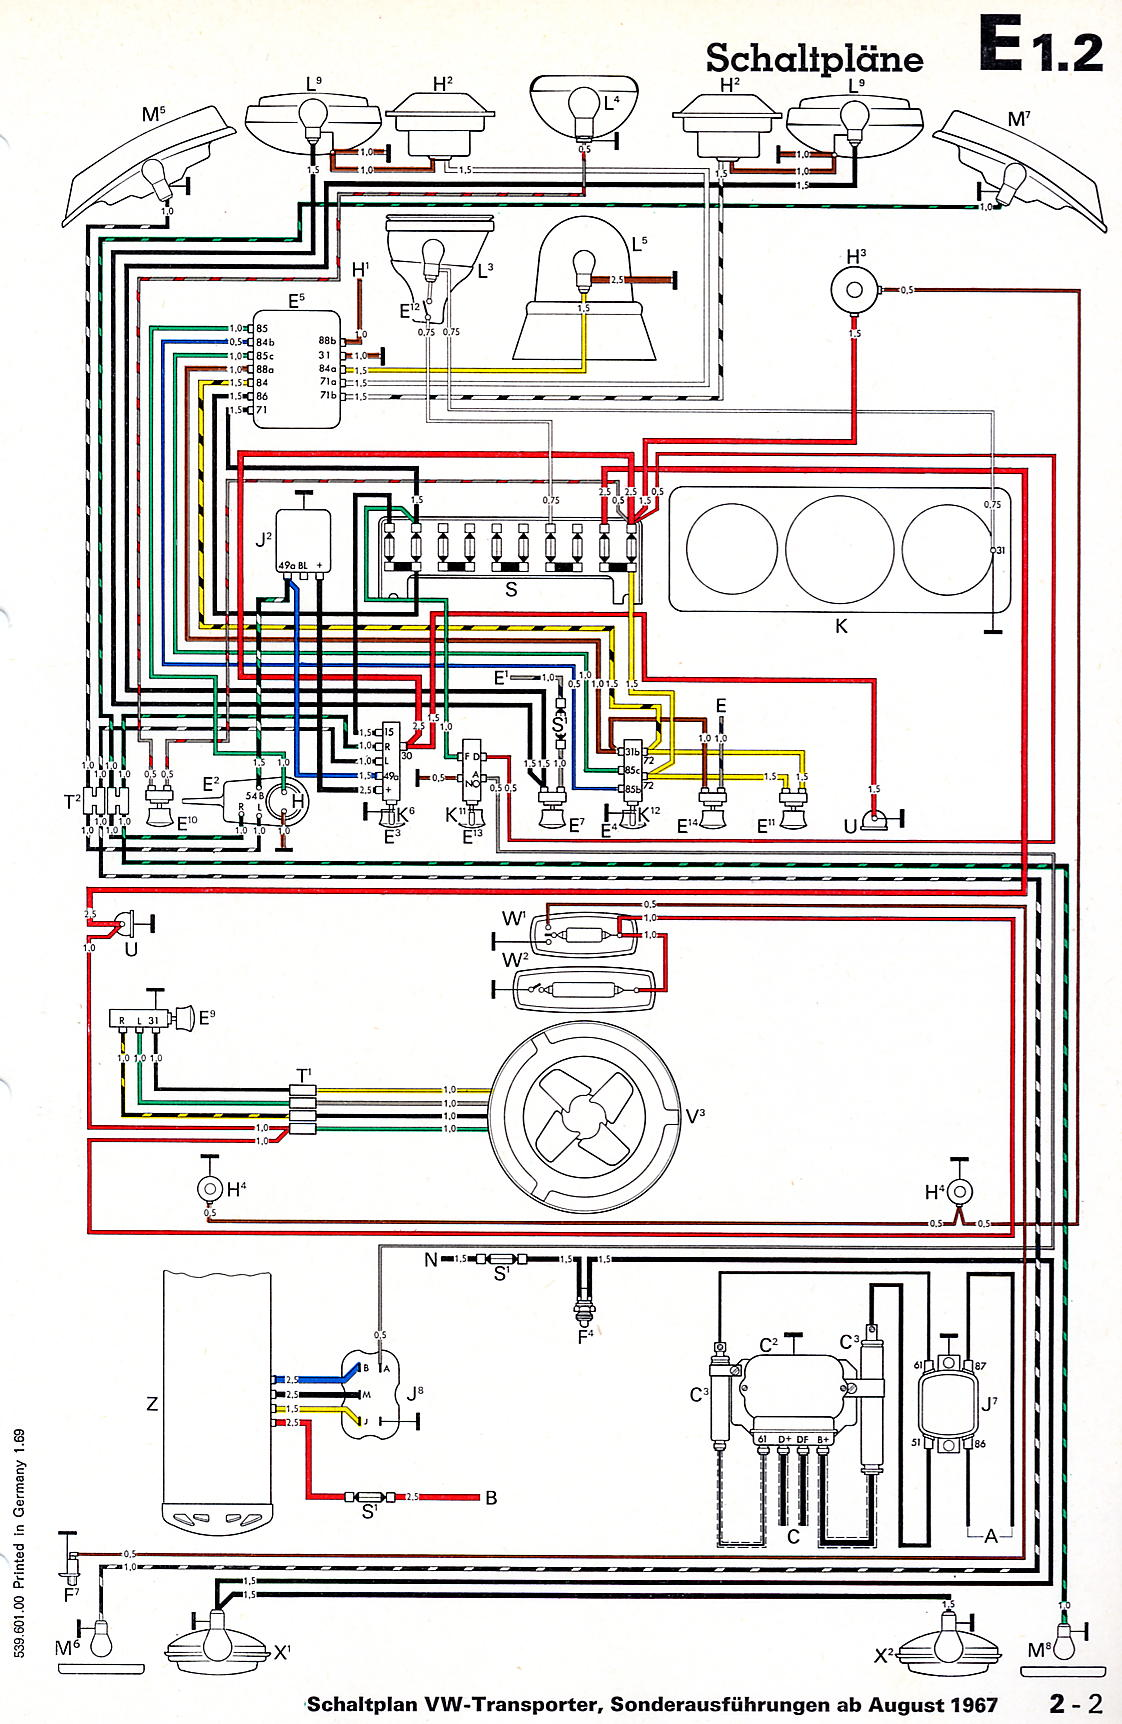 How To Repair A Car Horn By Mia Bevacqua further Pontiac Firebird 1999 2002 Fuse Box Diagram likewise Dodge Charger Rt Se And 500 1970 in addition 12 Volt Horn Wiring Diagram besides Watch. on air horn wiring diagram